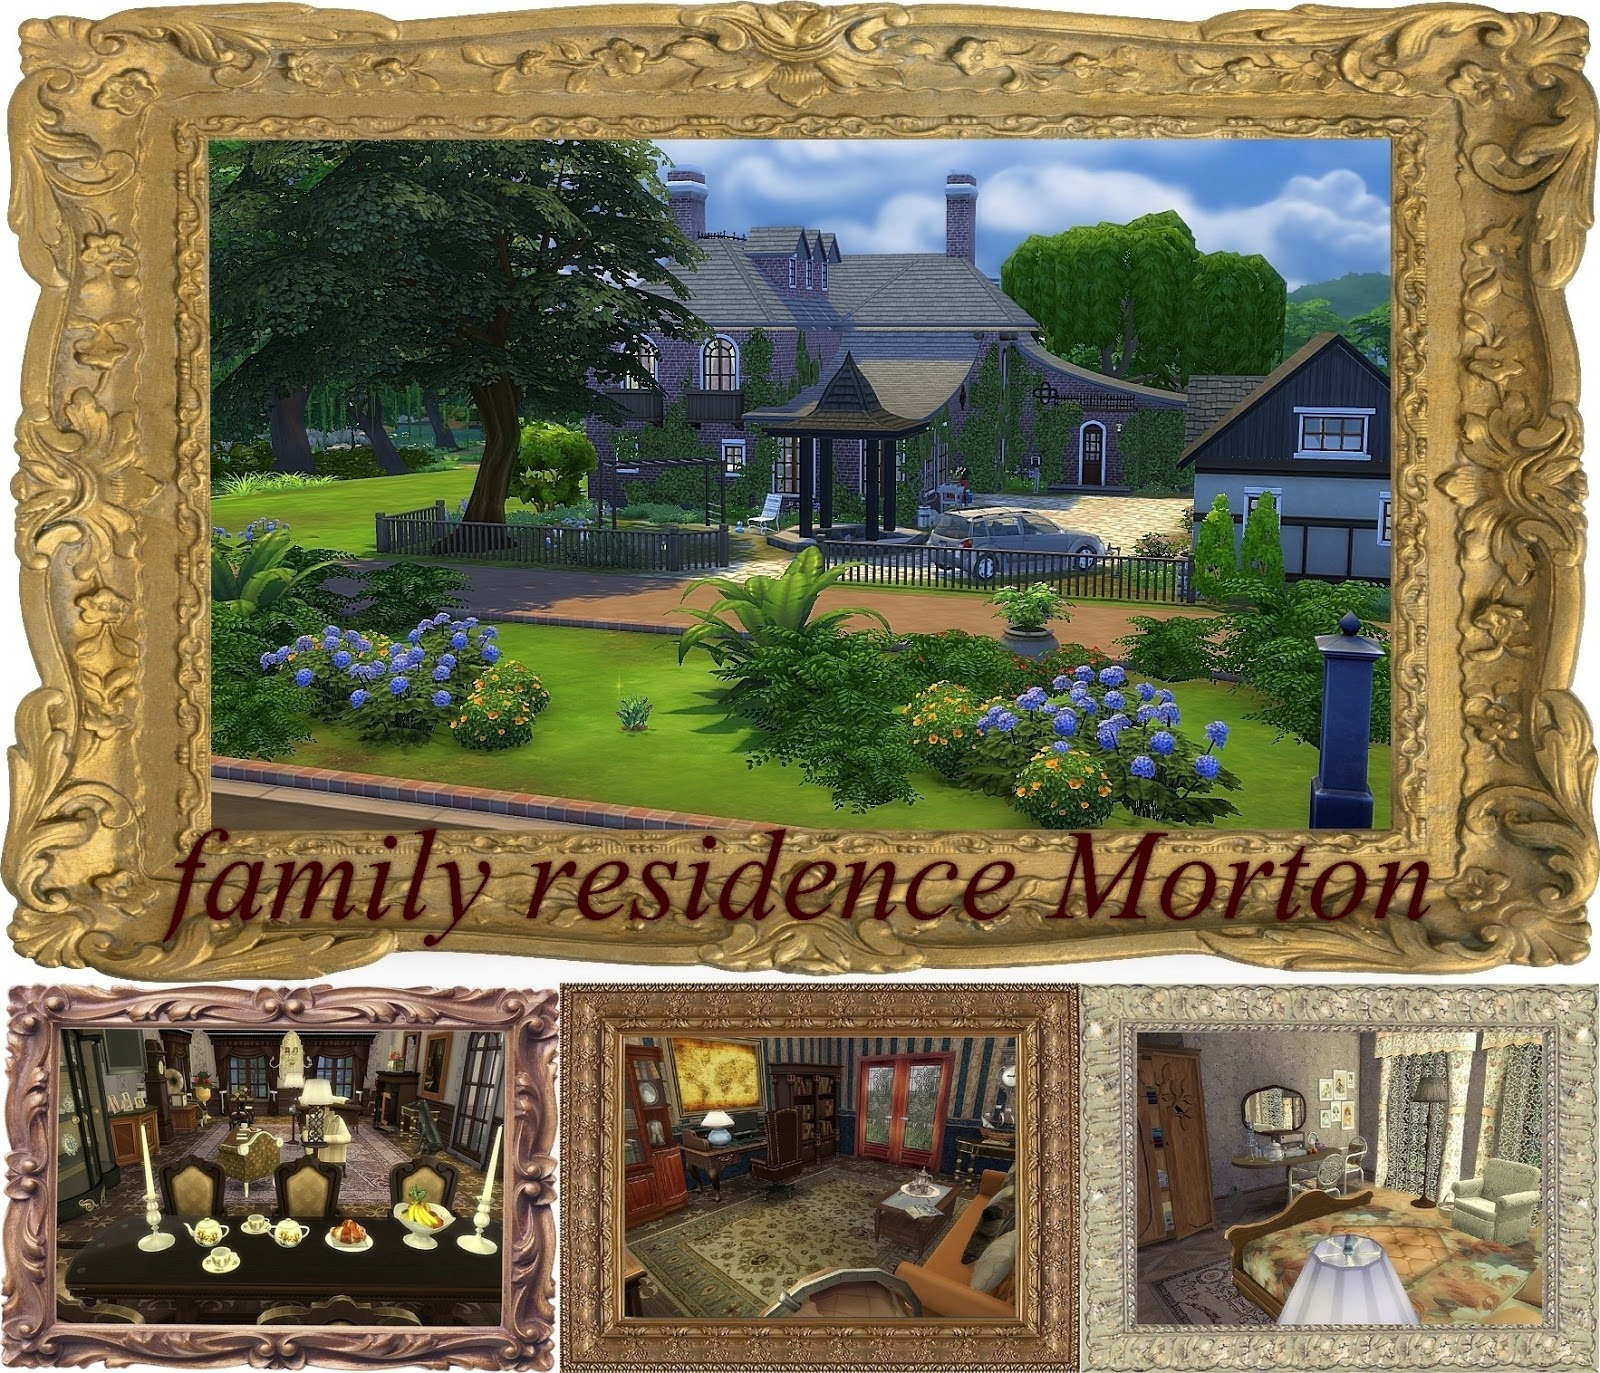 Family residence Morton by Dalila